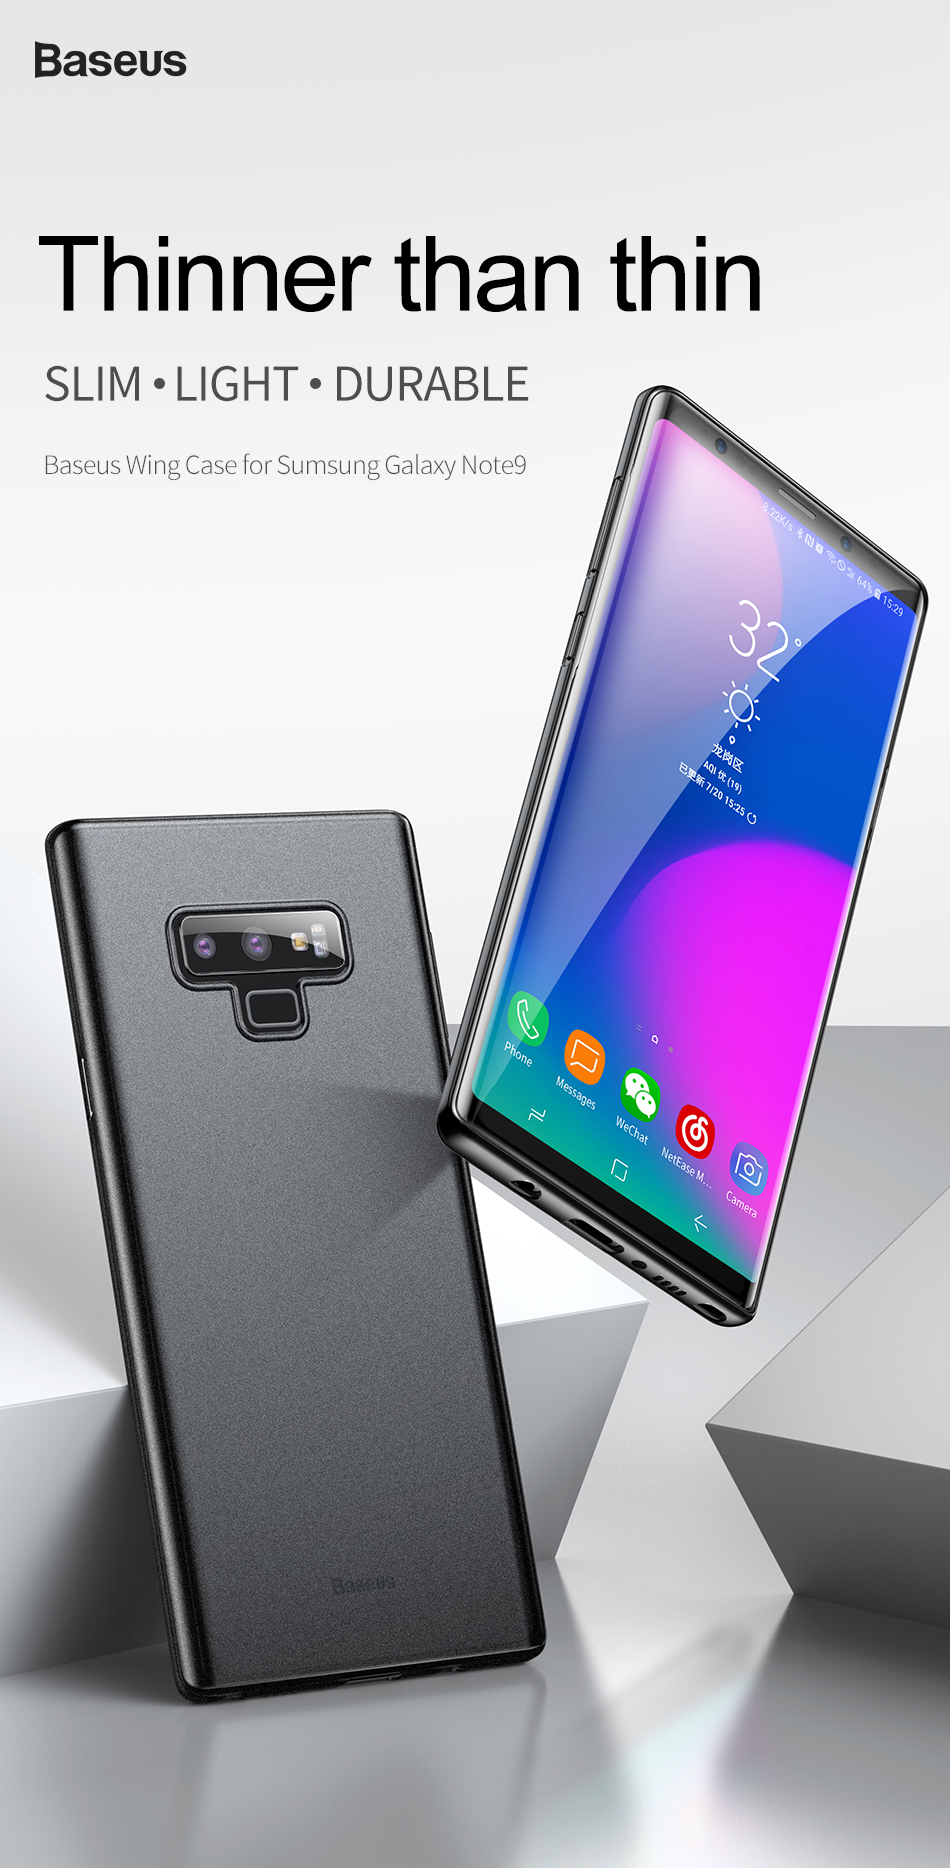 Baseus Wing Case Ultra Thin Lightweight Pp Cover For Samsung Galaxy Sky Oneplus One Additional Features Oleophobic Coating